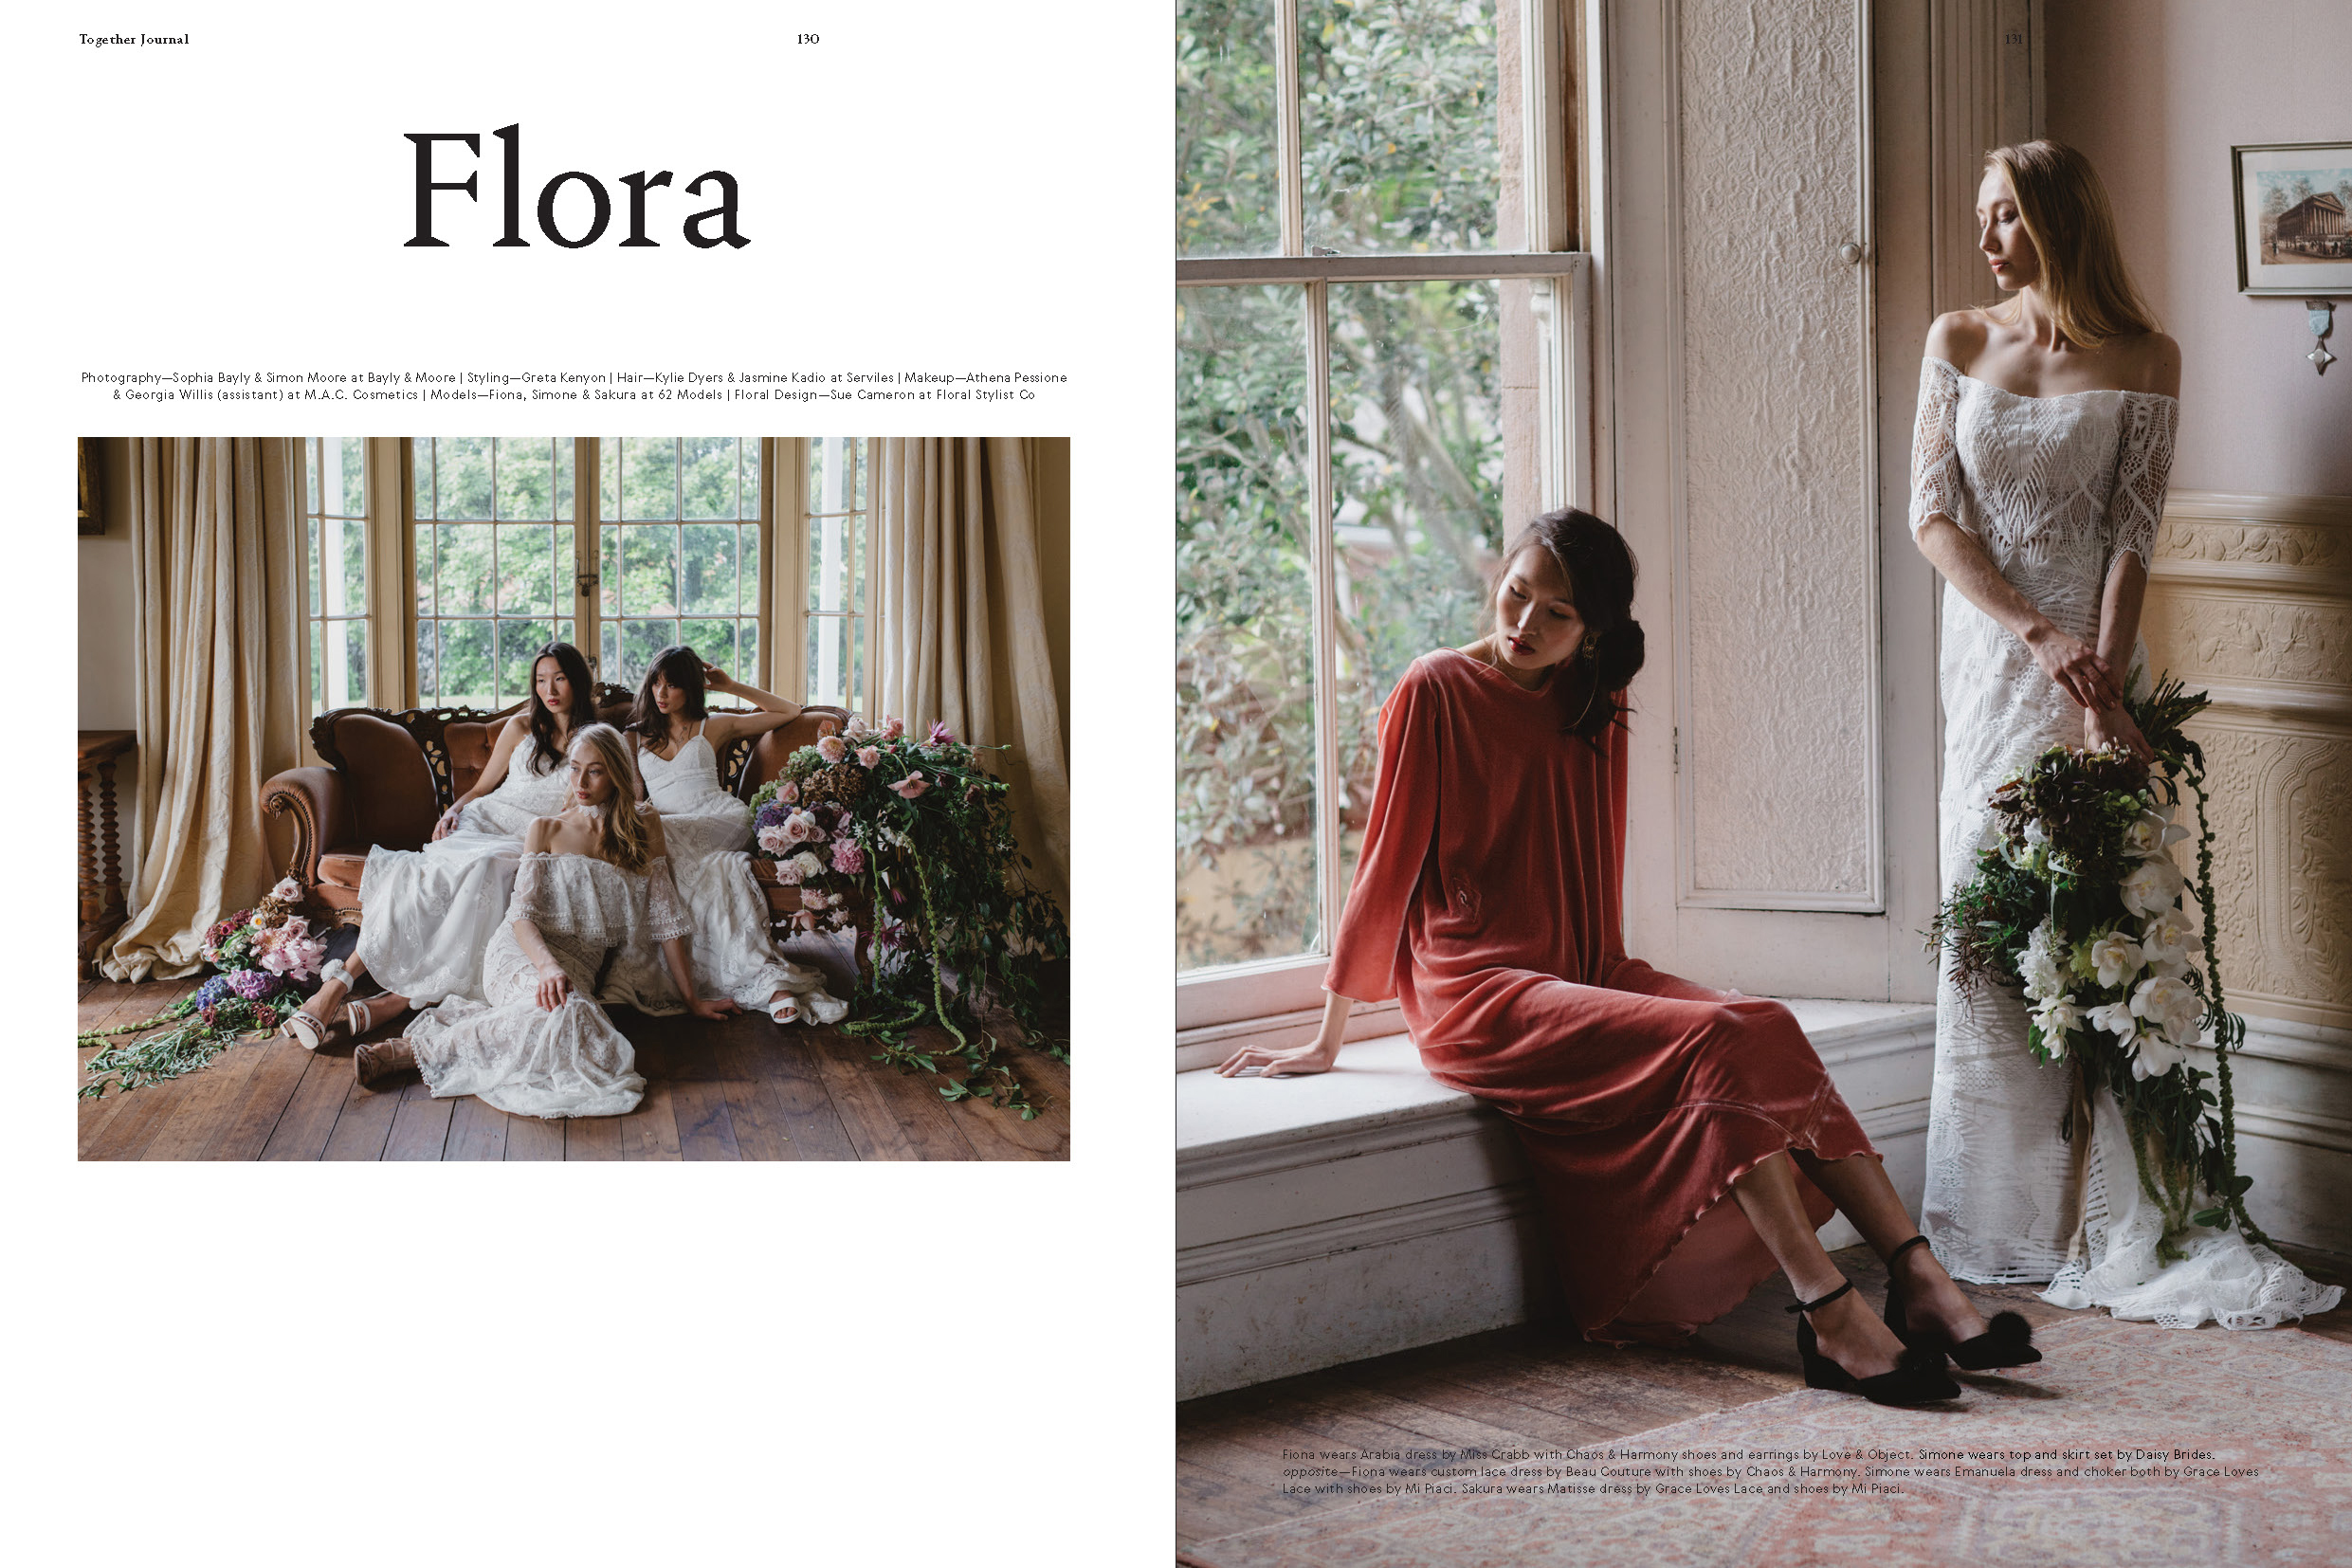 Categories: Fashion-Flora Fashion Issue 8